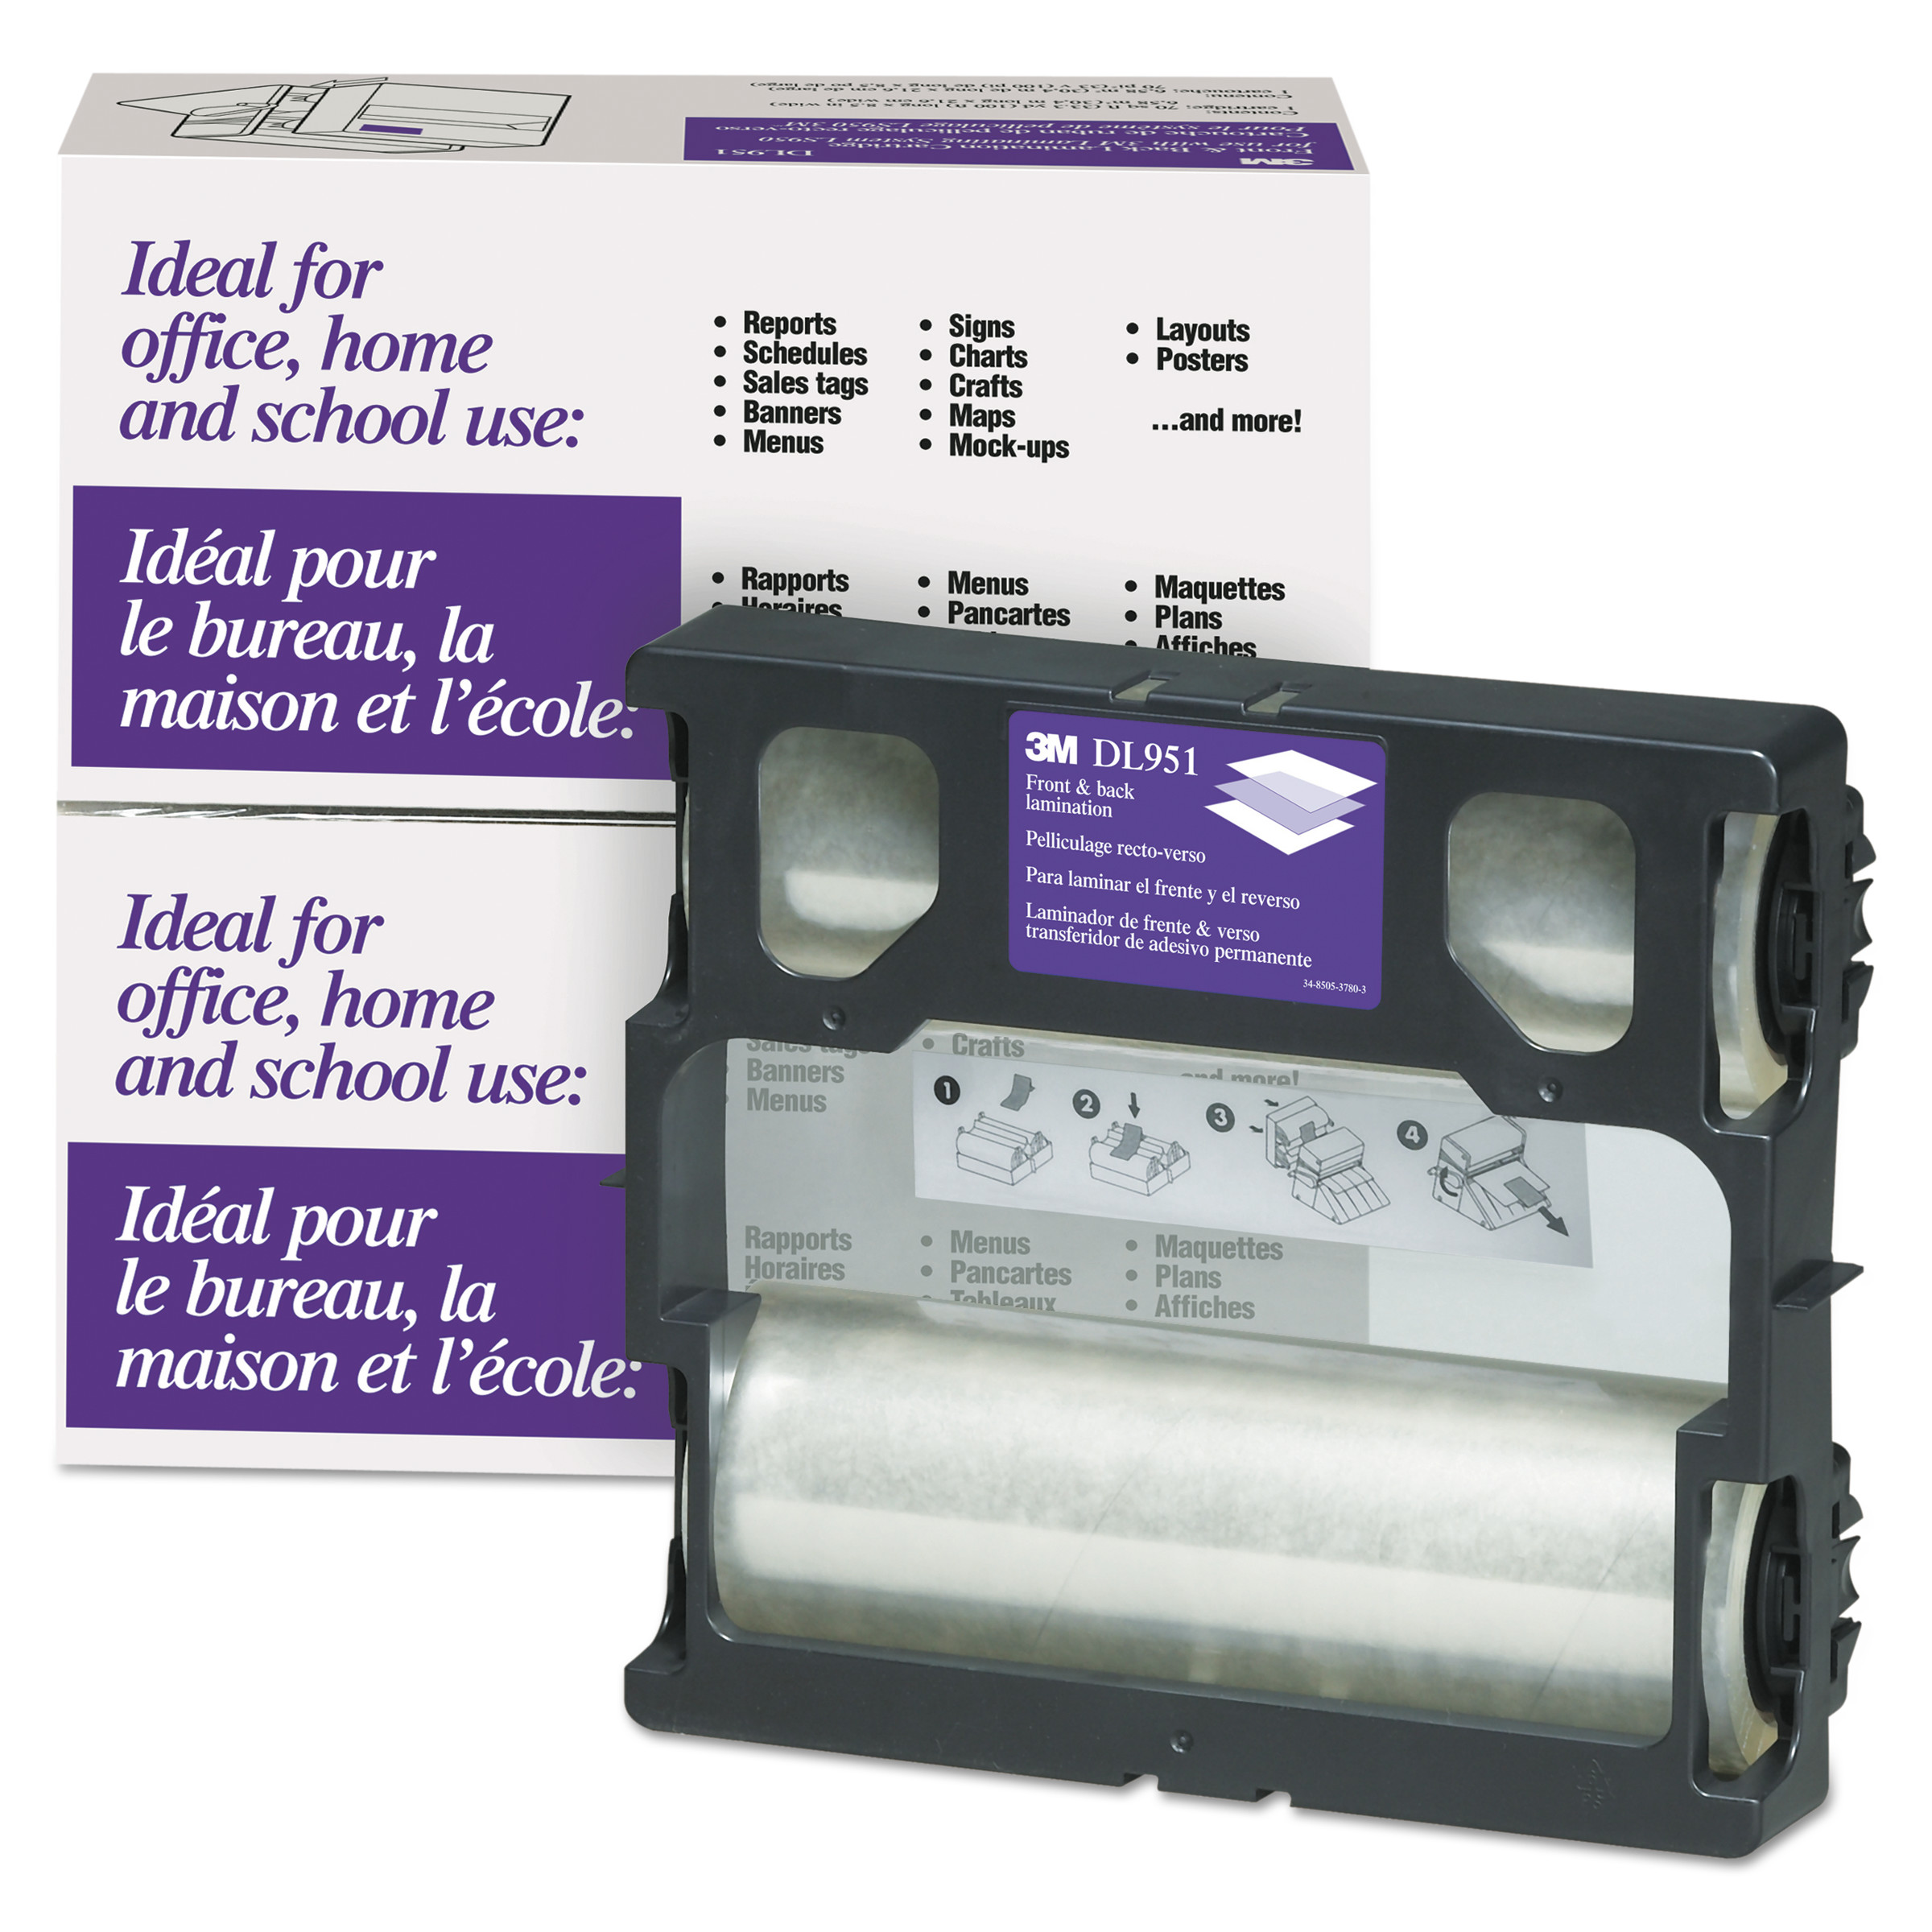 3M Glossy Refill Rolls for Heat-Free Laminating Machines,100 ft. -MMMDL951